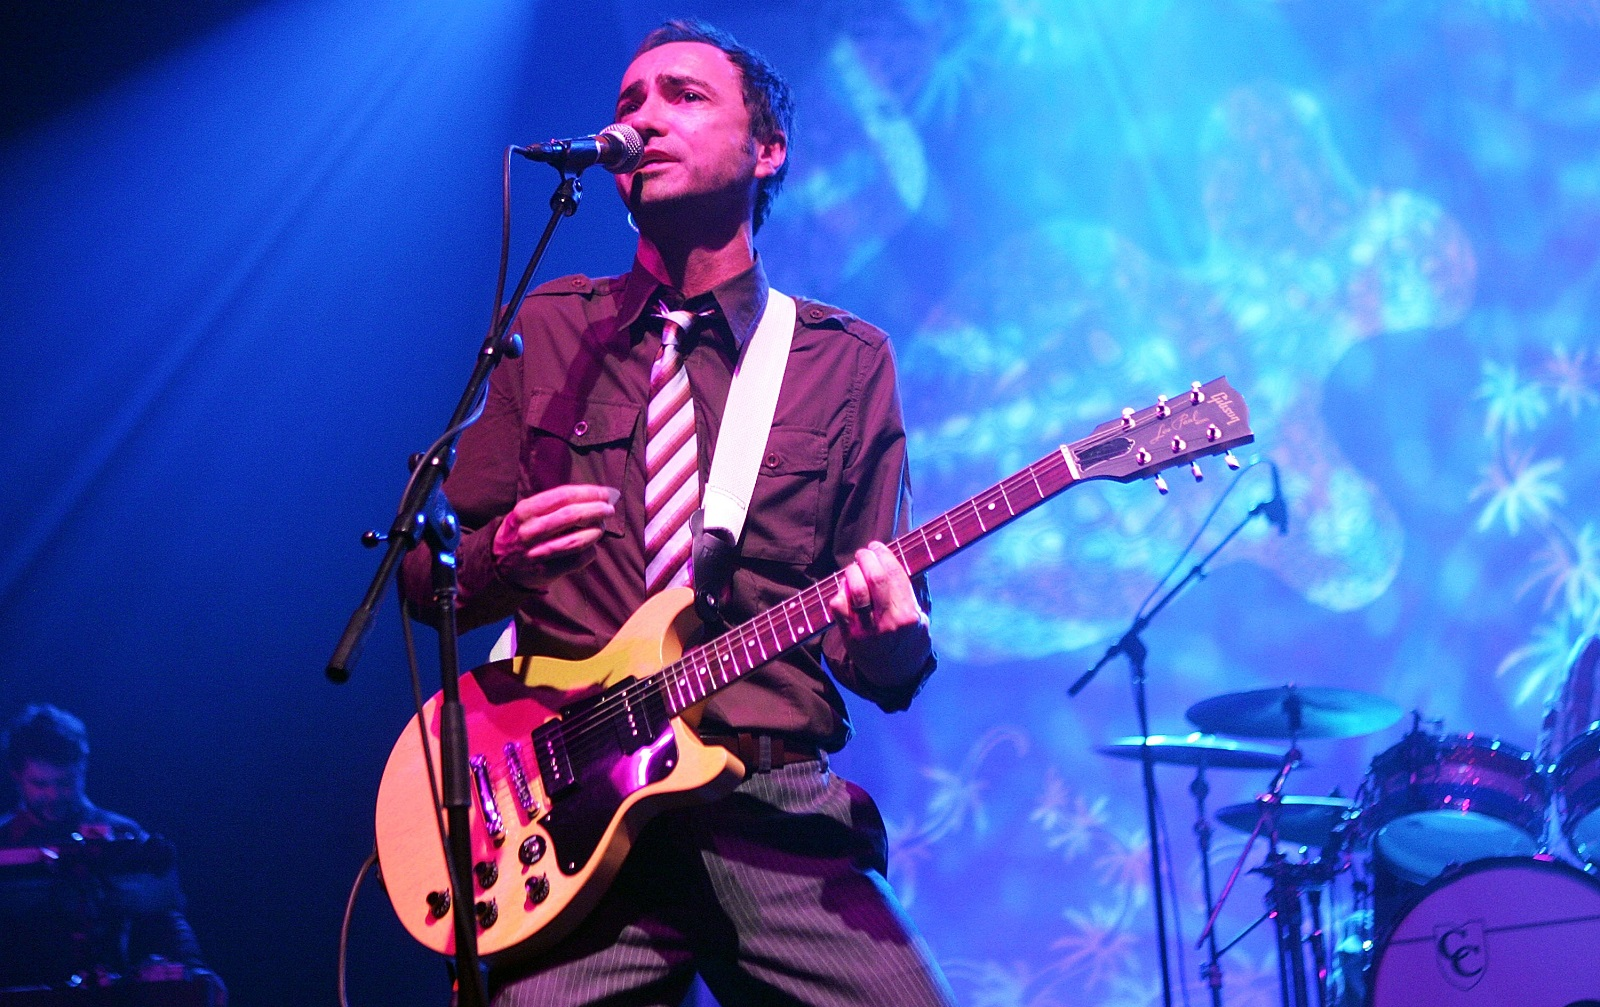 James Mercer, pictured performing in Madison Square Garden in 2007, leads the Shins again after the band's five-year hiatus. (Getty Images)